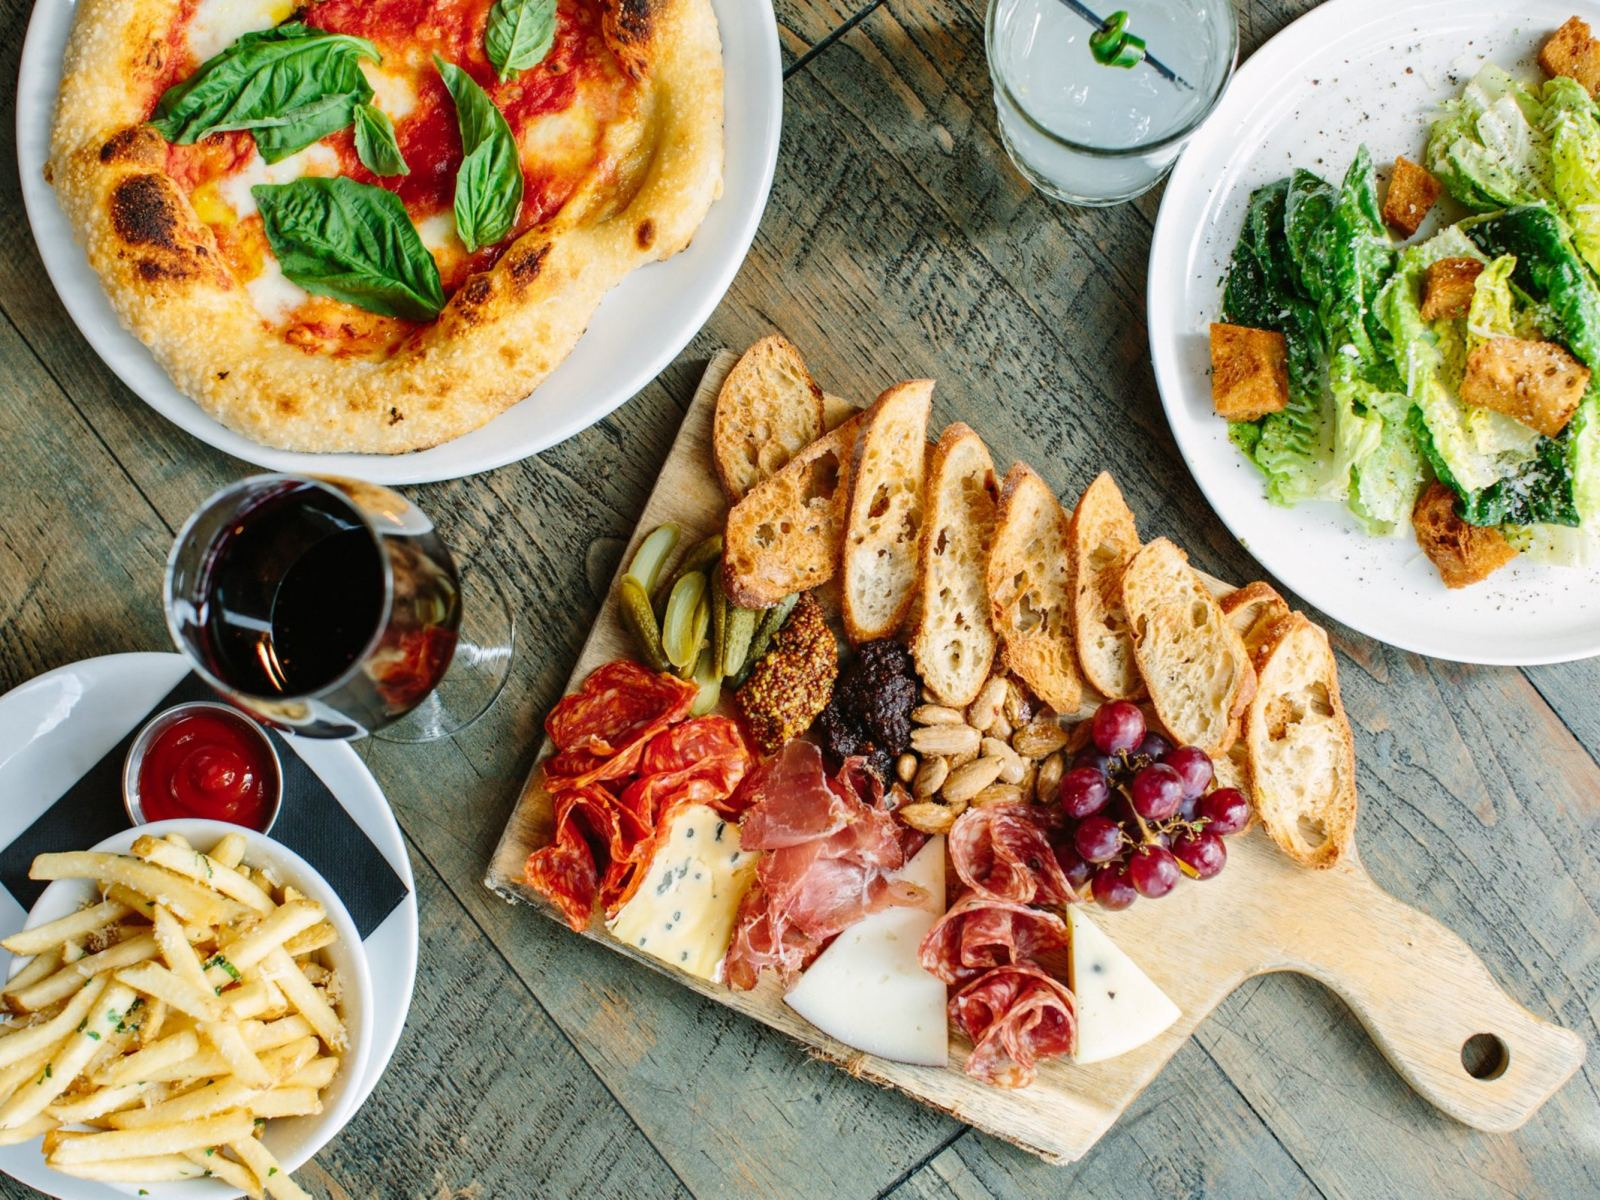 charcuterie board, truffle fries, pizza and salad